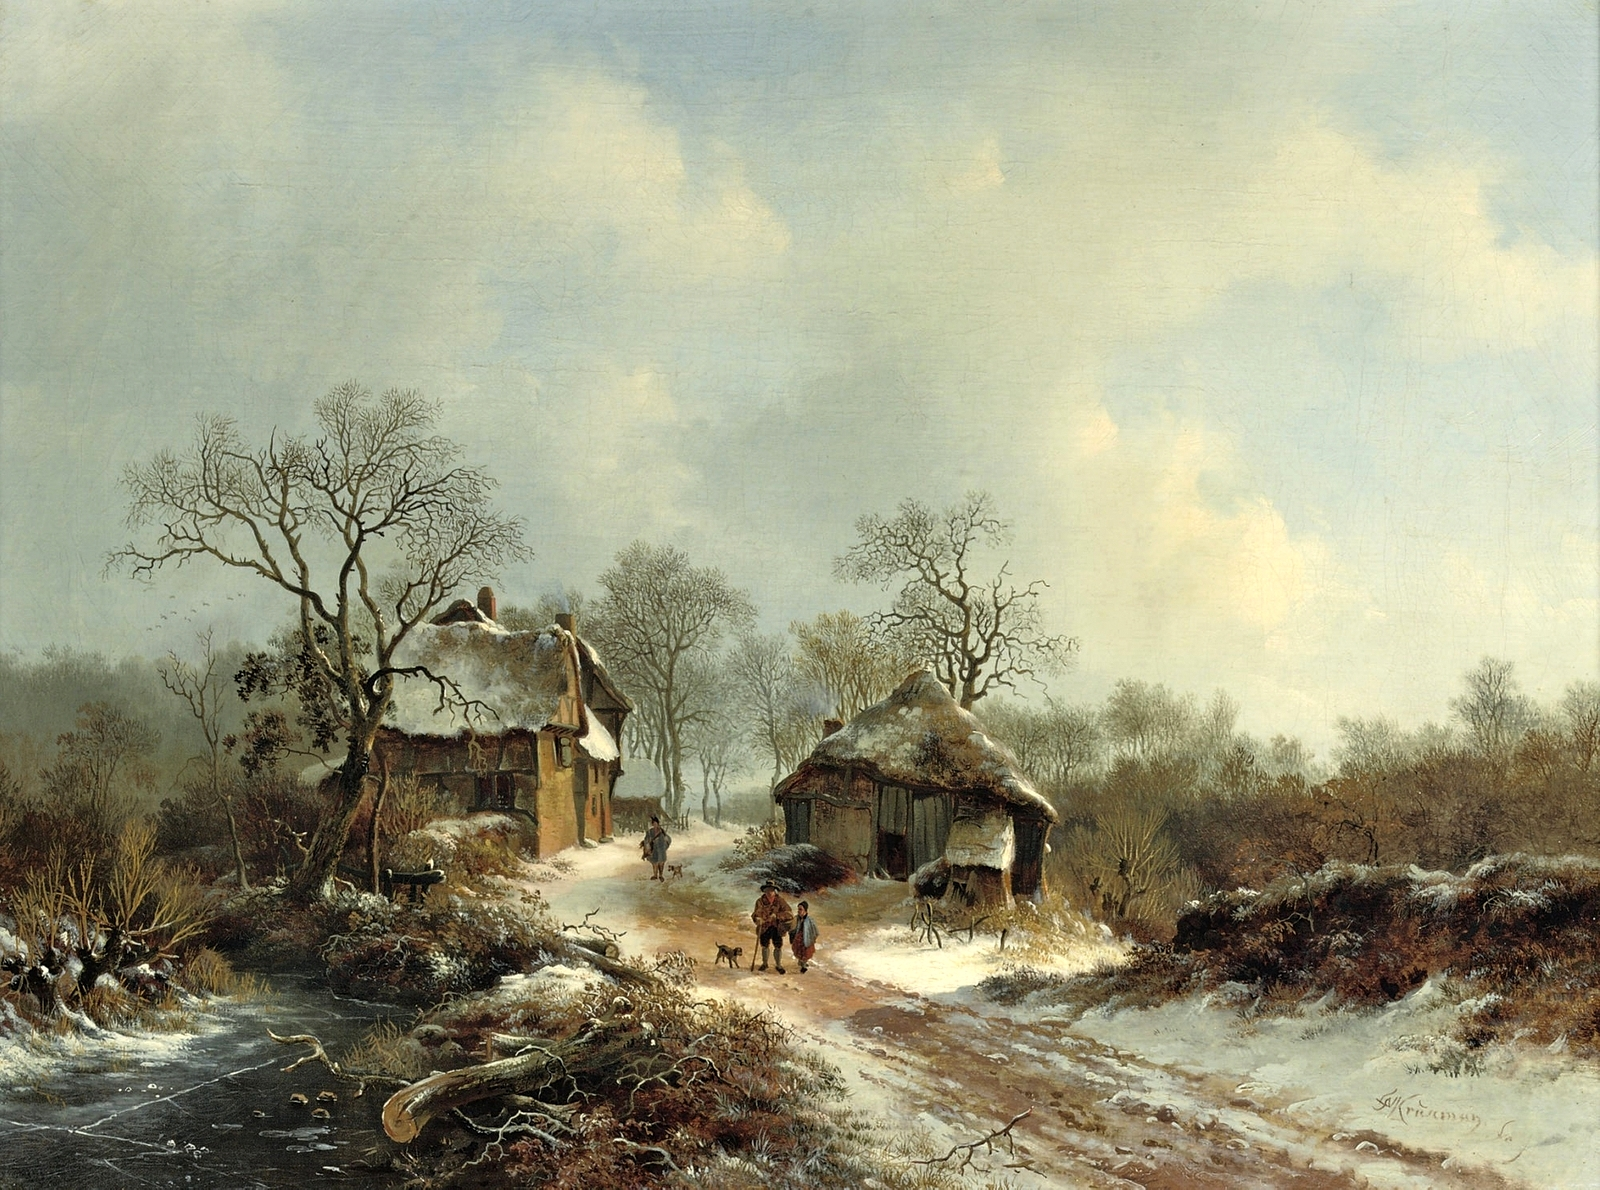 Frederik Marinus Kruseman – private collection. Title: Villagers on a Snow-Covered Path. Date: c. 1850-1880. Materials: oil on canvas. Dimensions: 42 x 56 cm. Source: http://1.bp.blogspot.com/-ua3M11592HA/VoM25C93b0I/AAAAAAAA3ho/ii9Kv3cBJjI/s1600/%25D0%25A1%25D0%25B5%25D0%25BB%25D1%258C%25D1%2587%25D0%25B0%25D0%25BD%25D0%25B5%2B%25D0%25BD%25D0%25B0%2B%25D1%2581%25D0%25BD%25D0%25B5%25D0%25B6%25D0%25BD%25D0%25BE%25D0%25B9%2B%25D0%25B4%25D0%25BE%25D1%2580%25D0%25BE%25D0%25B3%25D0%25B5%2B%2528Villagers%2Bon%2Ba%2Bsnow-covered%2Bpath%2529_42%2Bx%2B56_%25D1%2585.%252C%25D0%25BC._%25D0%25A7%25D0%25B0%25D1%2581%25D1%2582%25D0%25BD%25D0%25BE%25D0%25B5%2B%25D1%2581%25D0%25BE%25D0%25B1%25D1%2580%25D0%25B0%25D0%25BD%25D0%25B8%25D0%25B5.jpg. I have changed the contrast of the original photo.